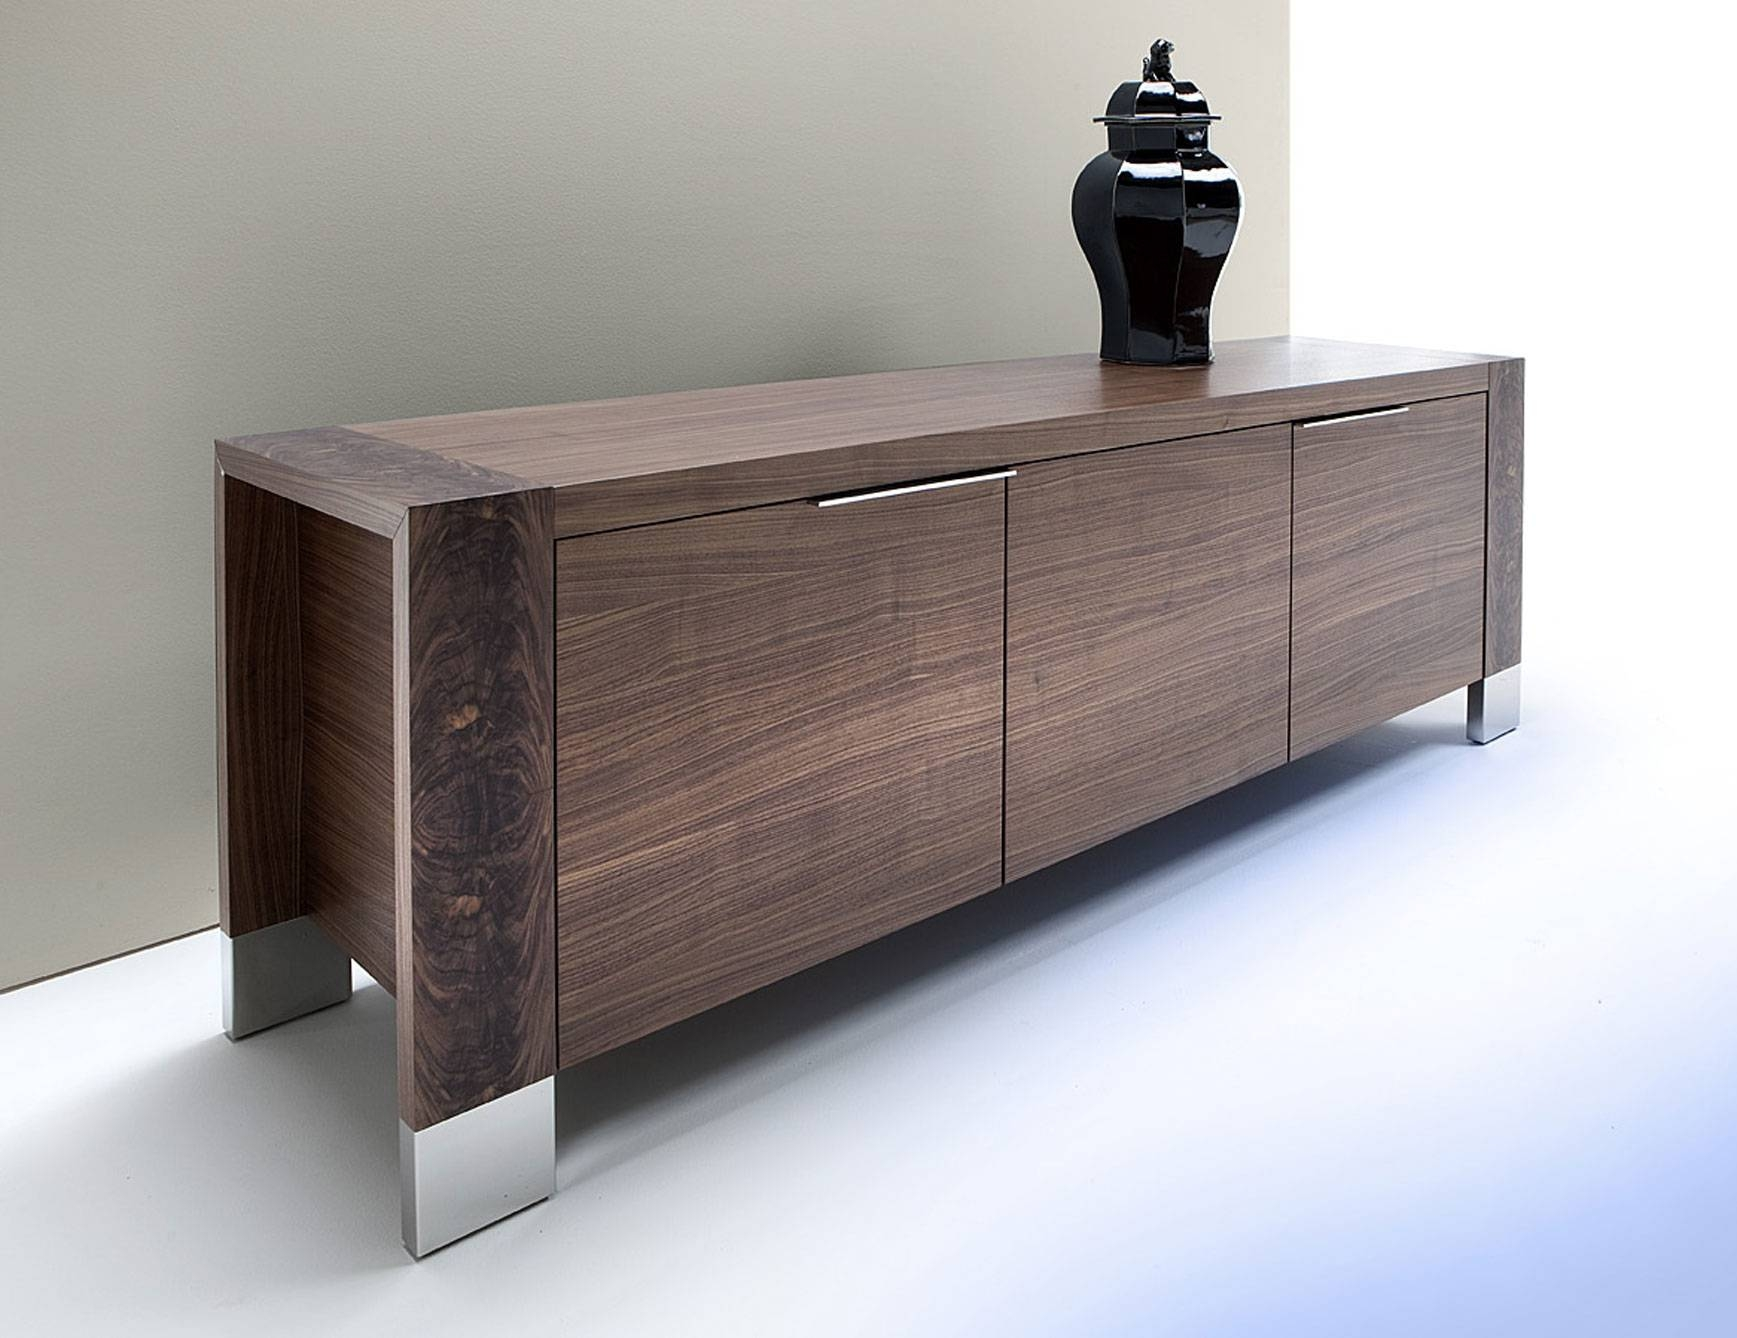 Sideboards. Amusing Buffet Storage Credenza: Buffet-Storage with regard to Contemporary Sideboard Cabinets (Image 23 of 30)